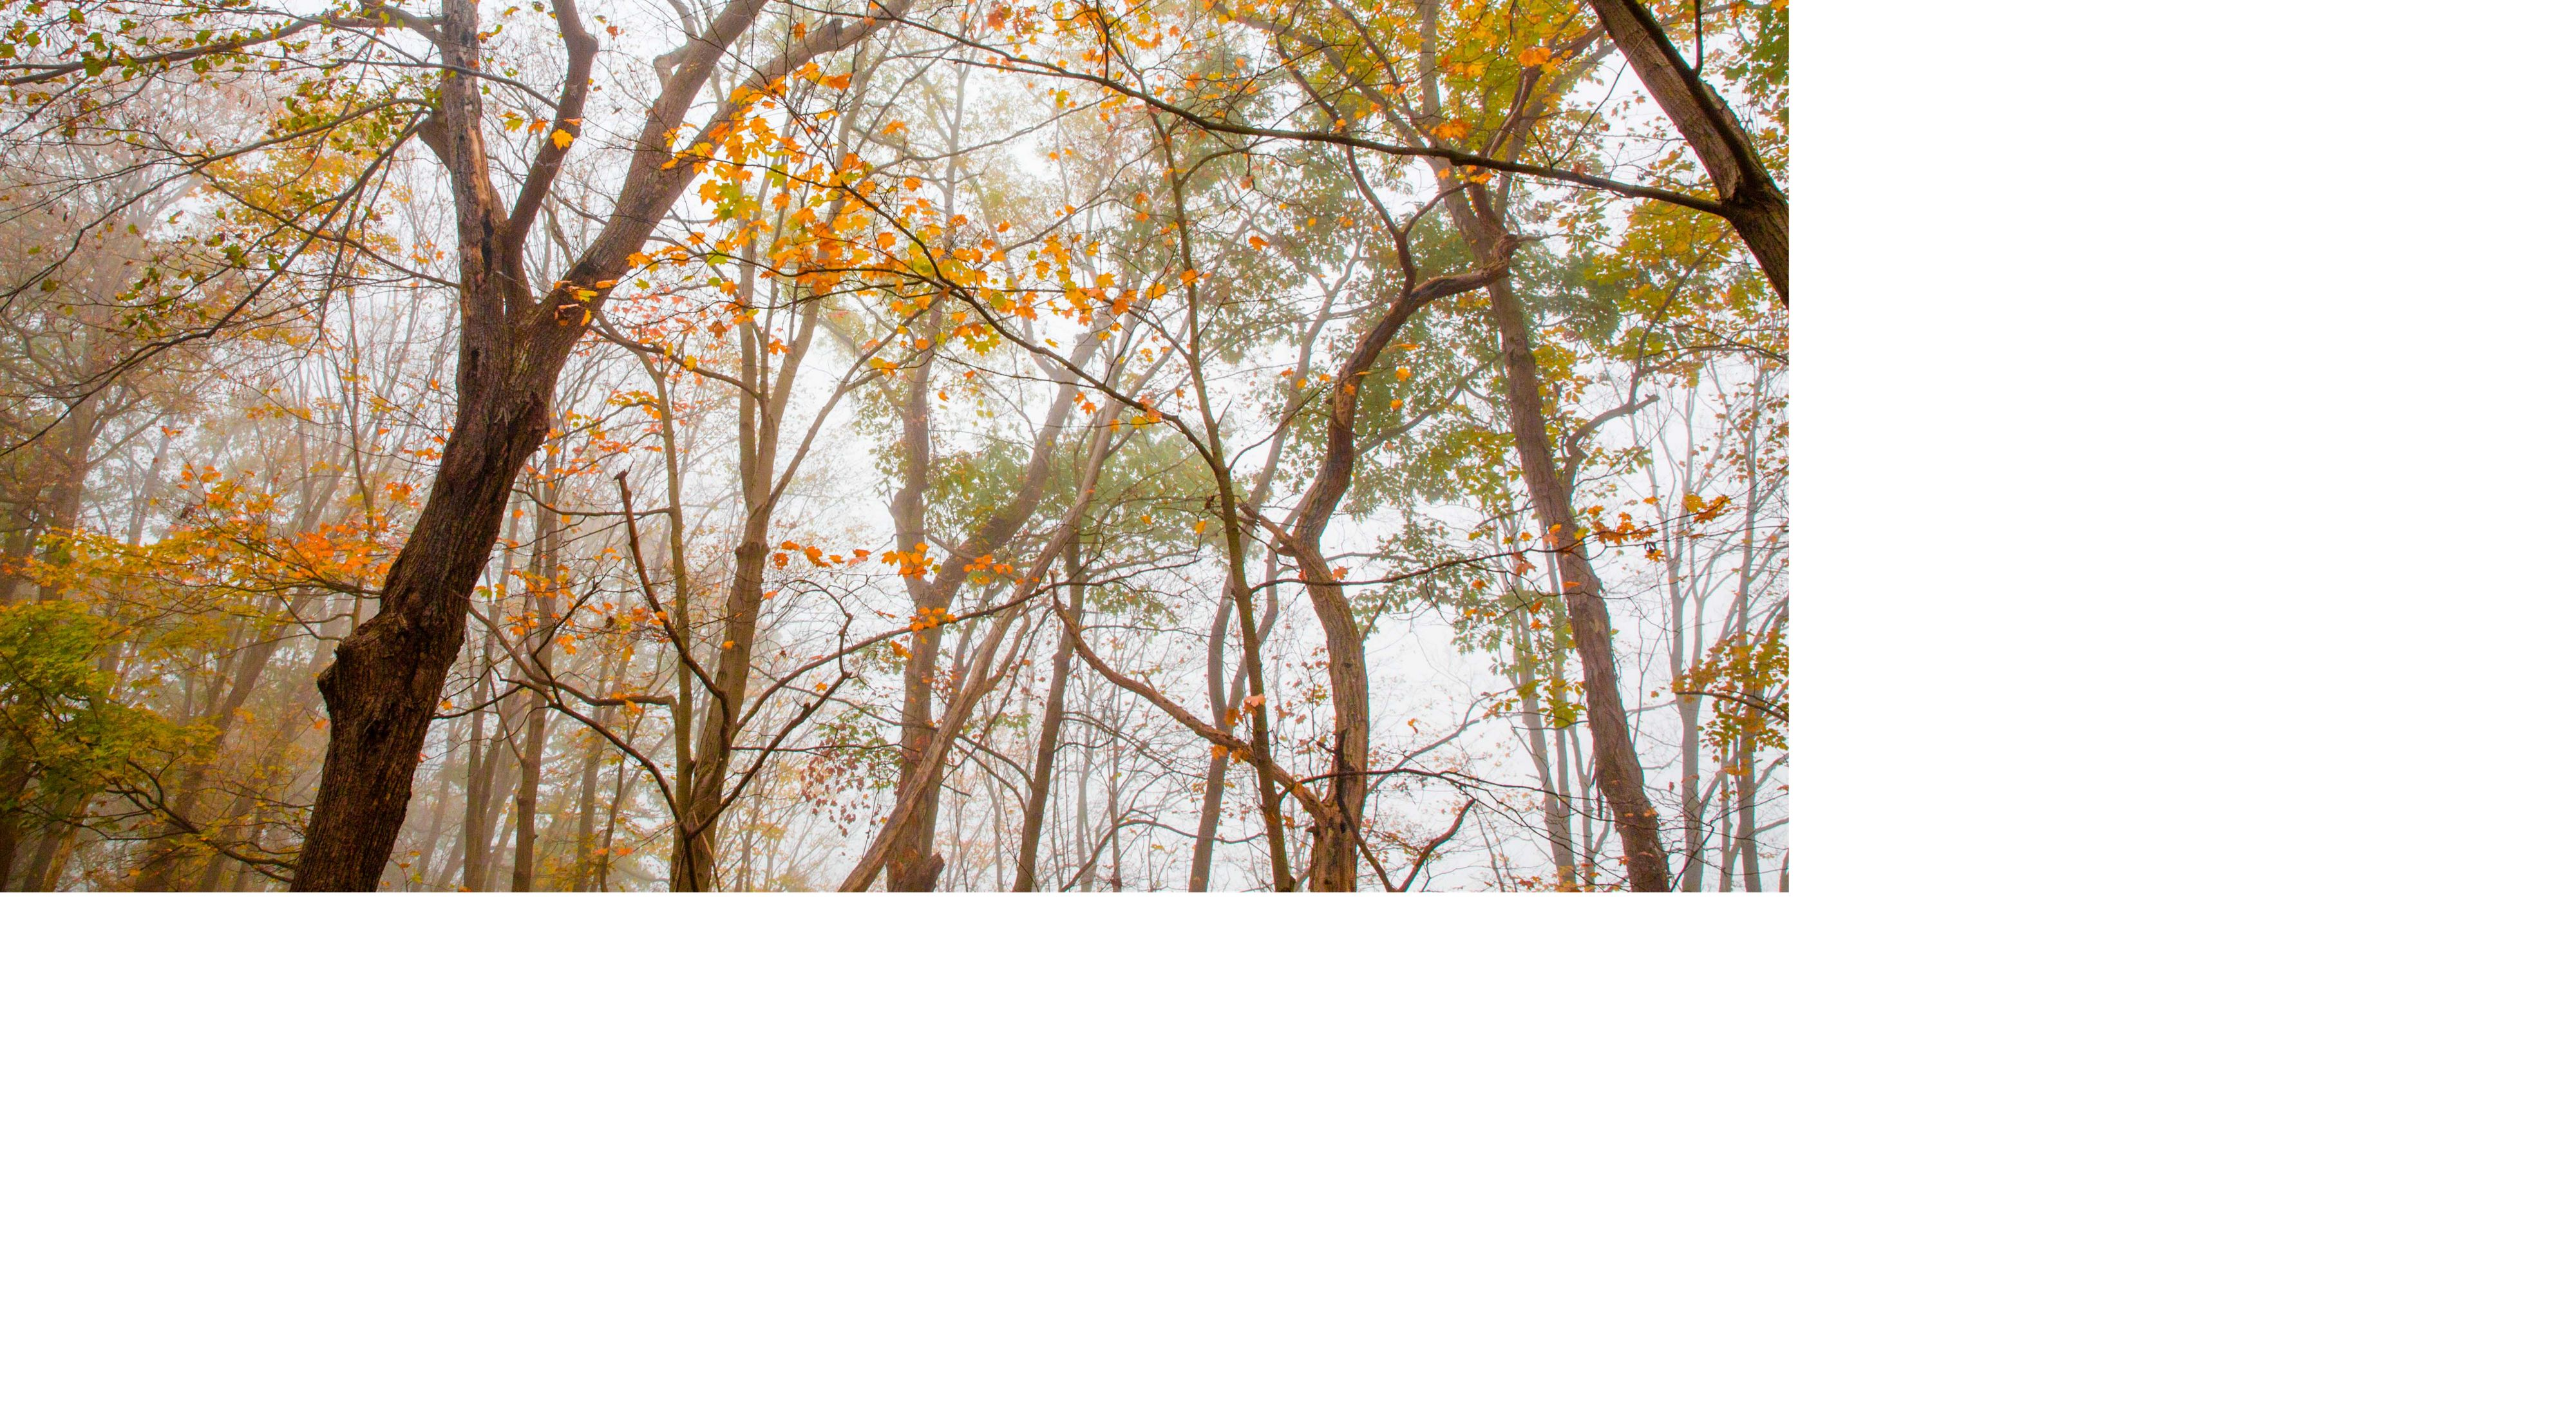 Forest treetops with fall color